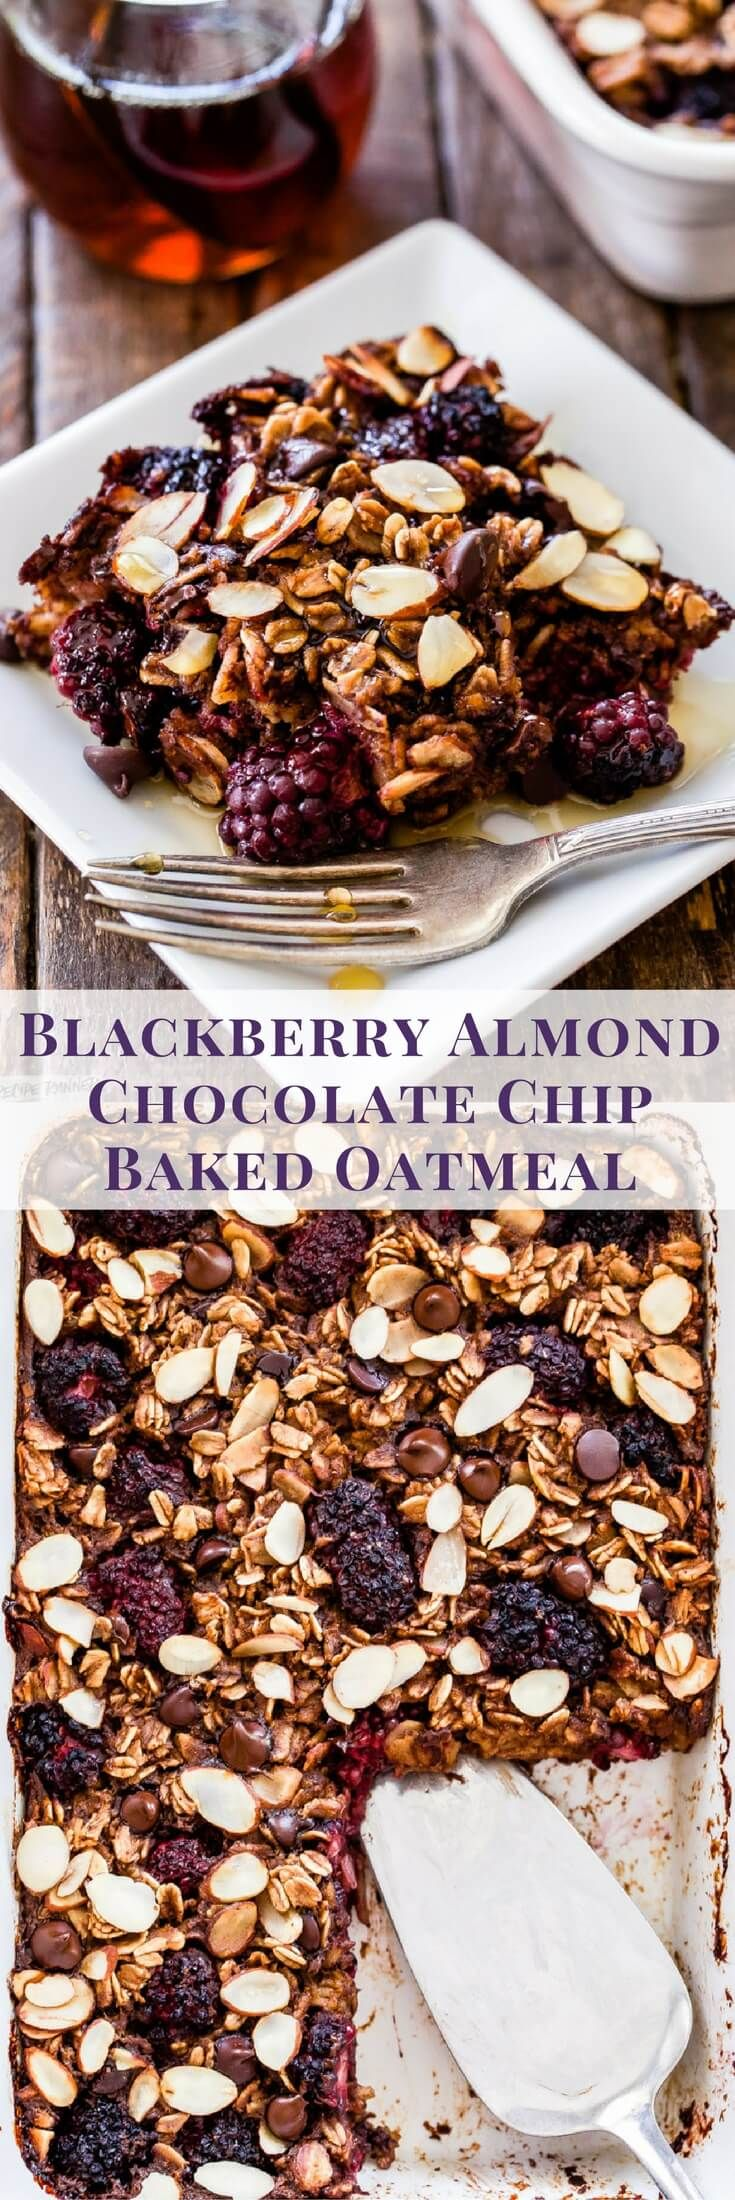 Baked oatmeal is the perfect way to warm up on a crisp fall morning. You'll love this Blackberry Almond Chocolate Chip Baked Oatmeal! It has just the right amount of sweetness from the dark chocolate, tartness of the blackberries and crunch from the almonds. Drizzle it with maple syrup for a delicious weekend breakfast treat!